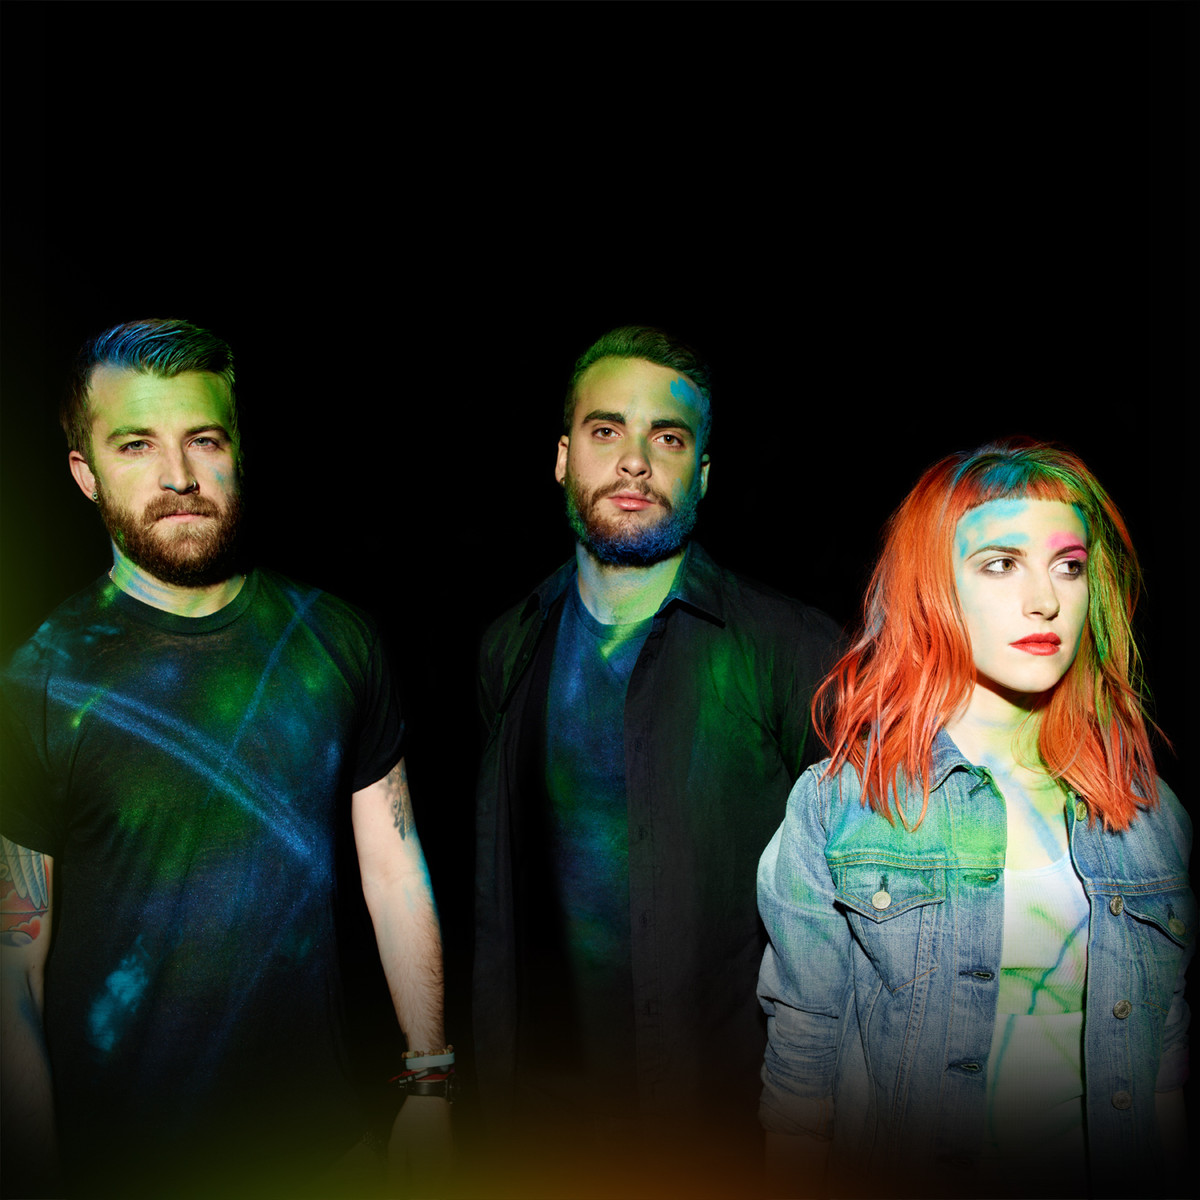 Paramore - iTunes Festival 2013 - Roundhouse London - Hack4Life